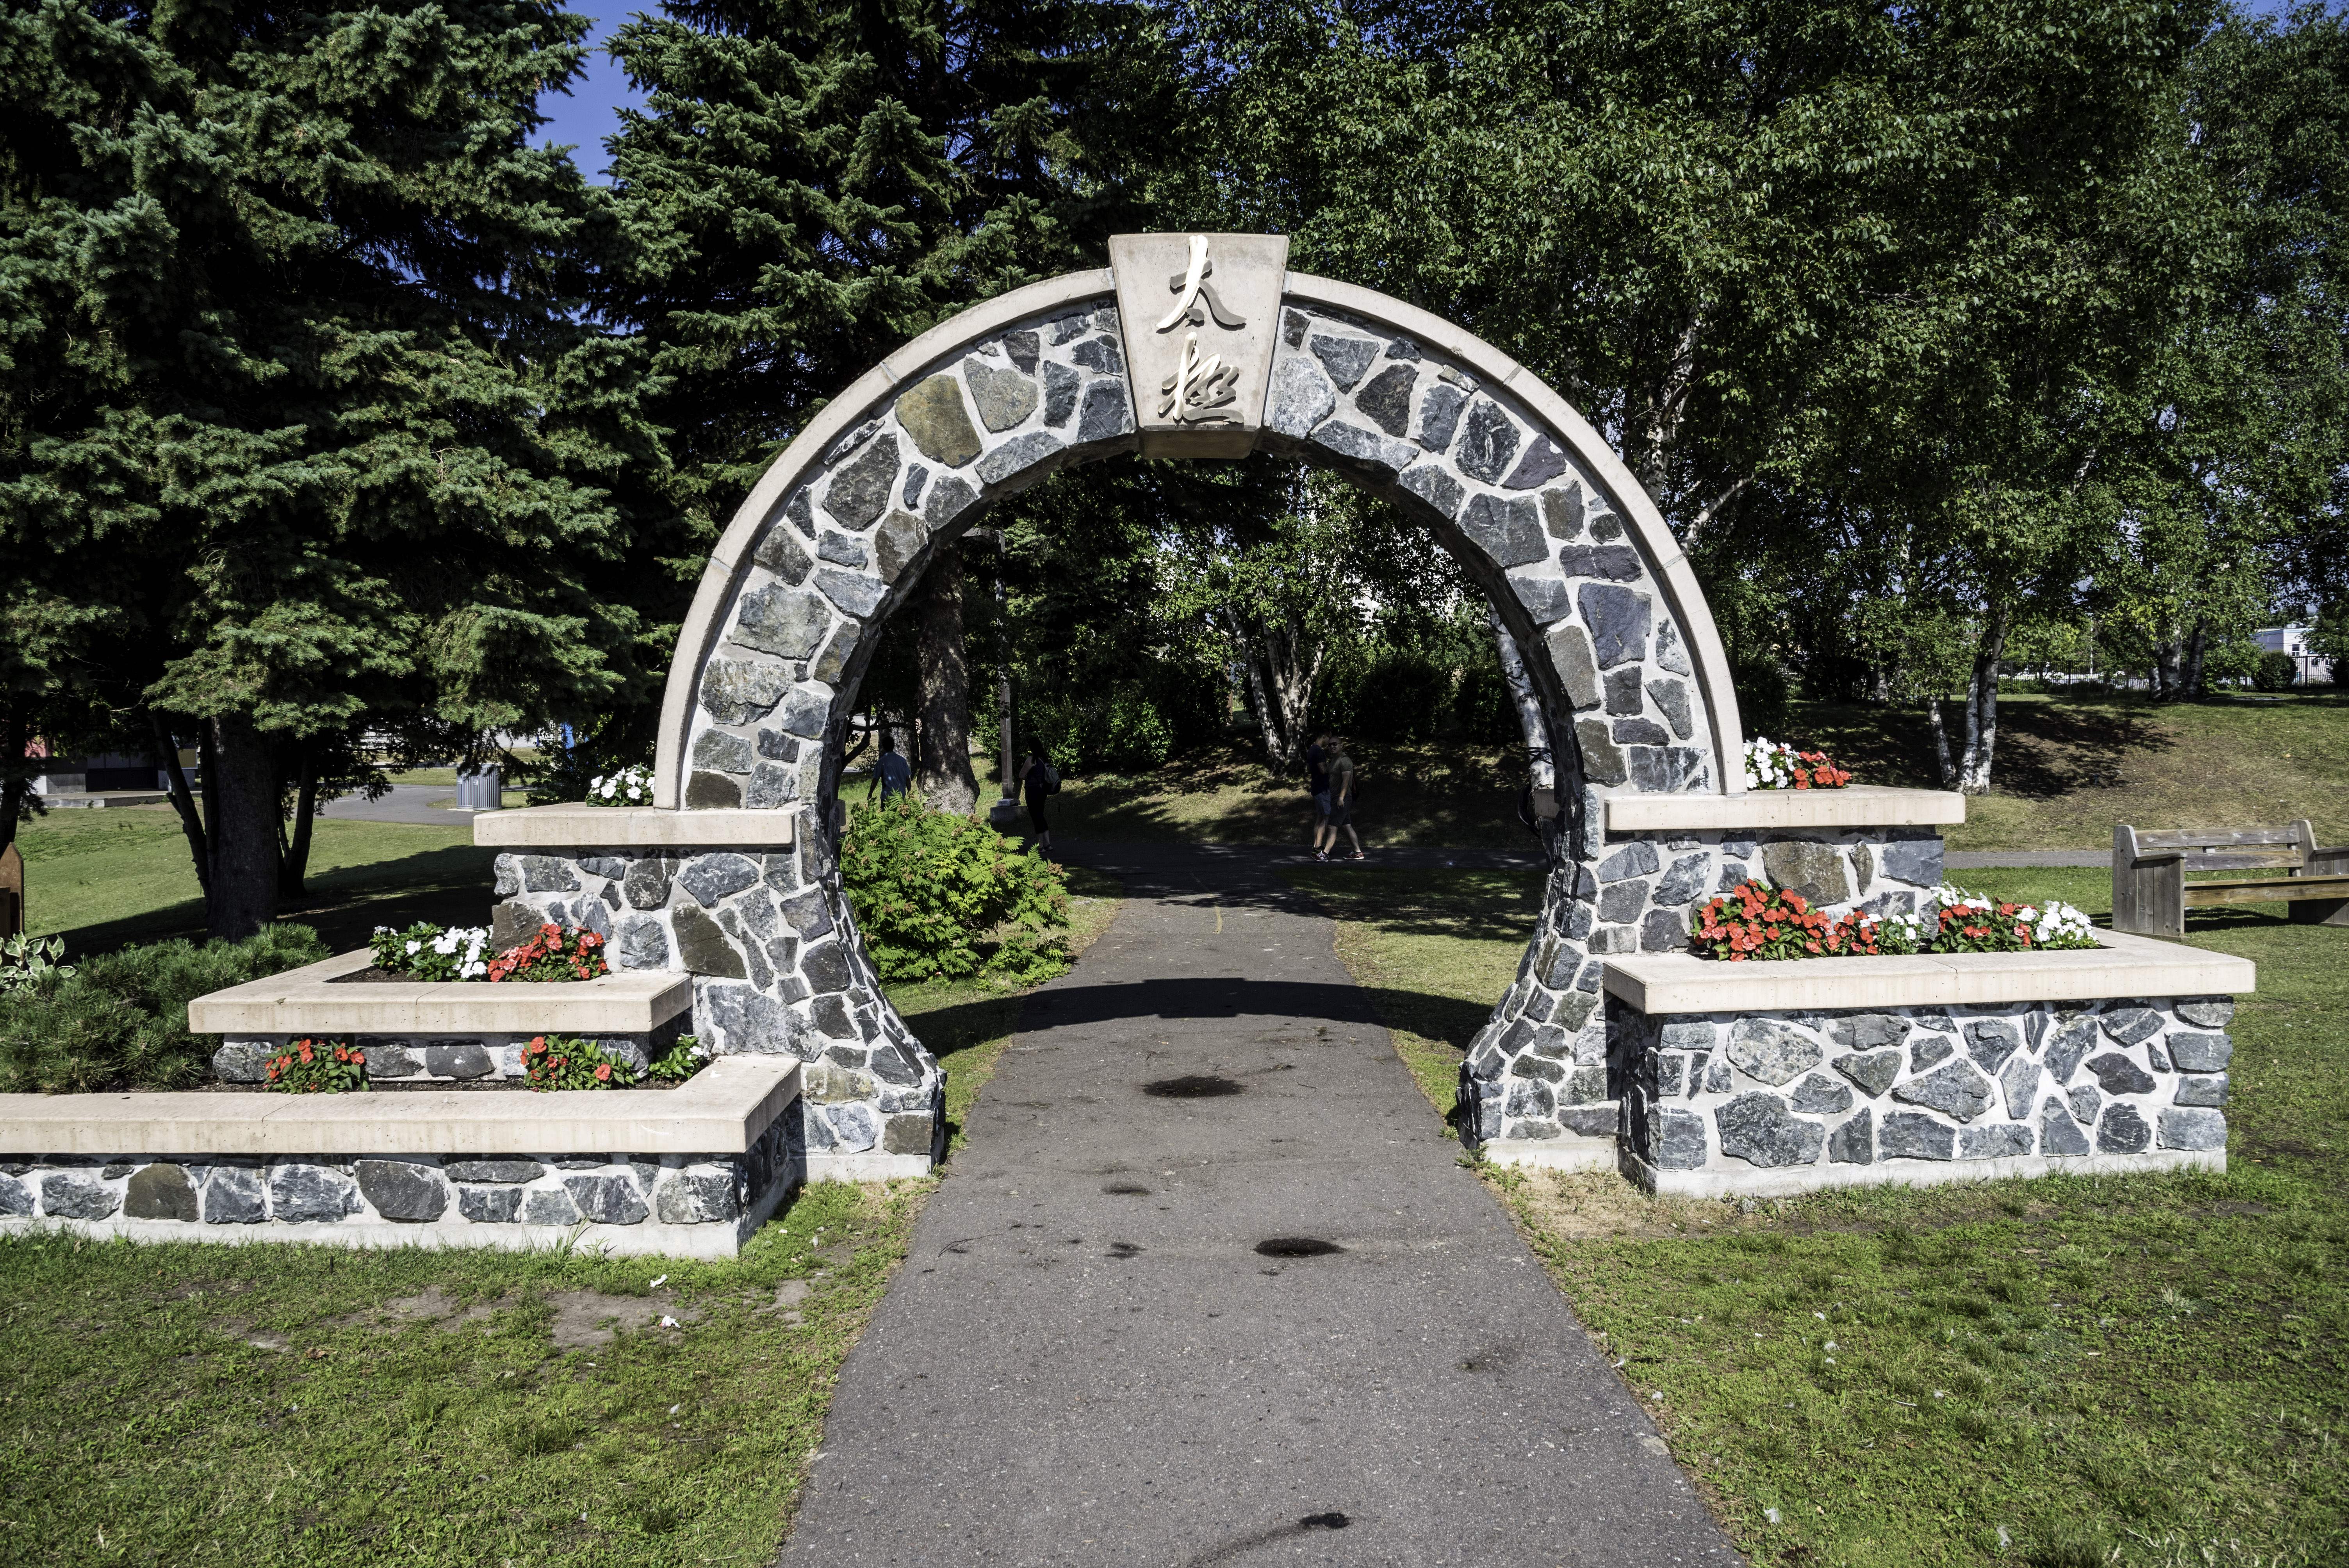 entrance into the taiji chinese garden in thunder bay ontario canada